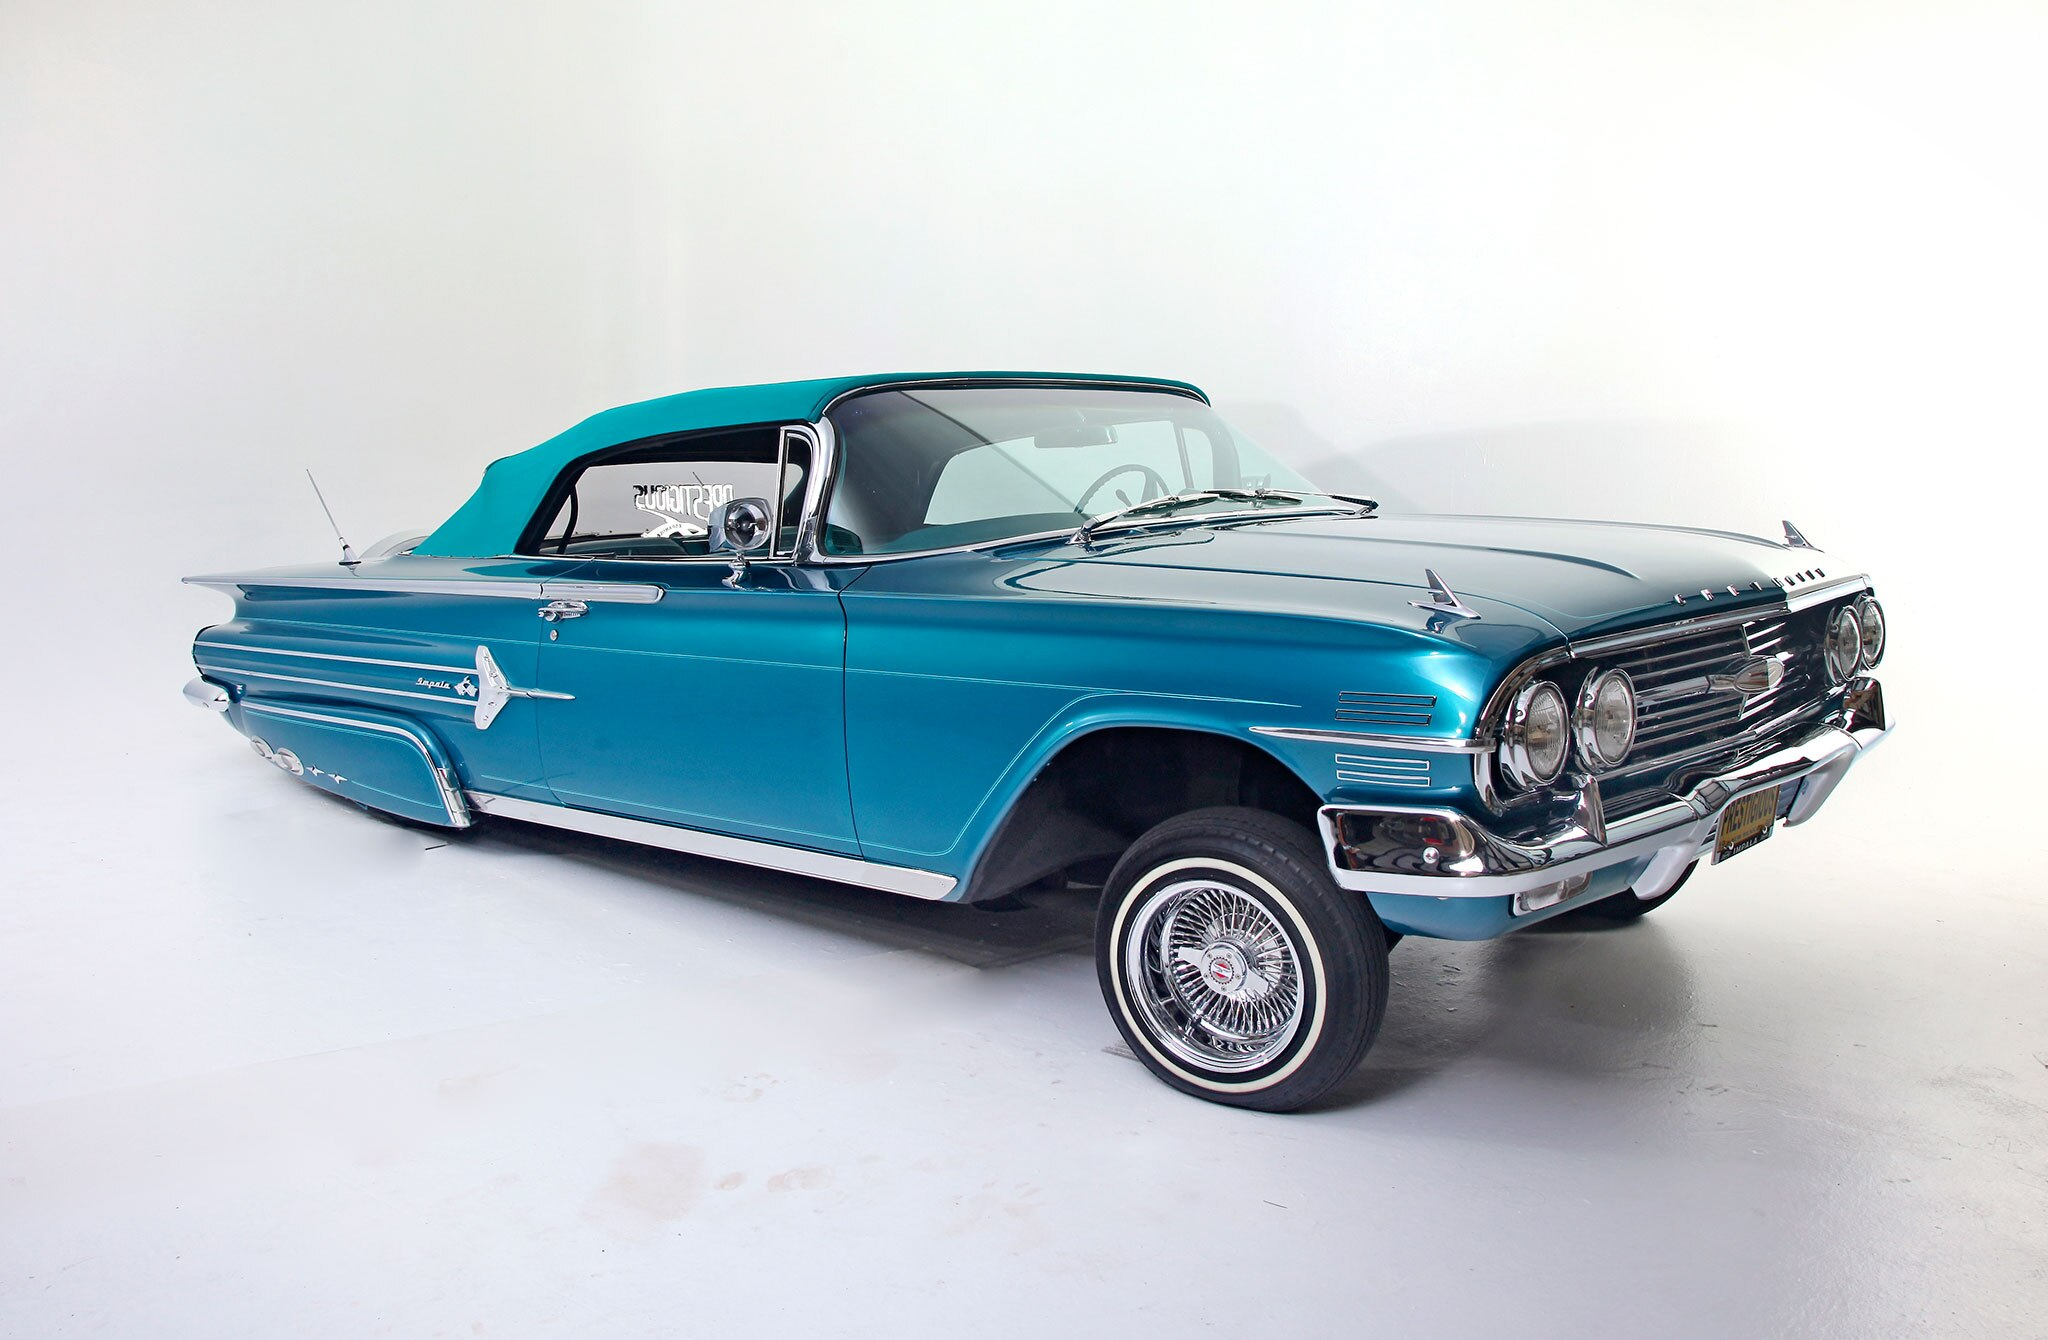 1960-chevrolet-impala-passenger-side-front-view-162